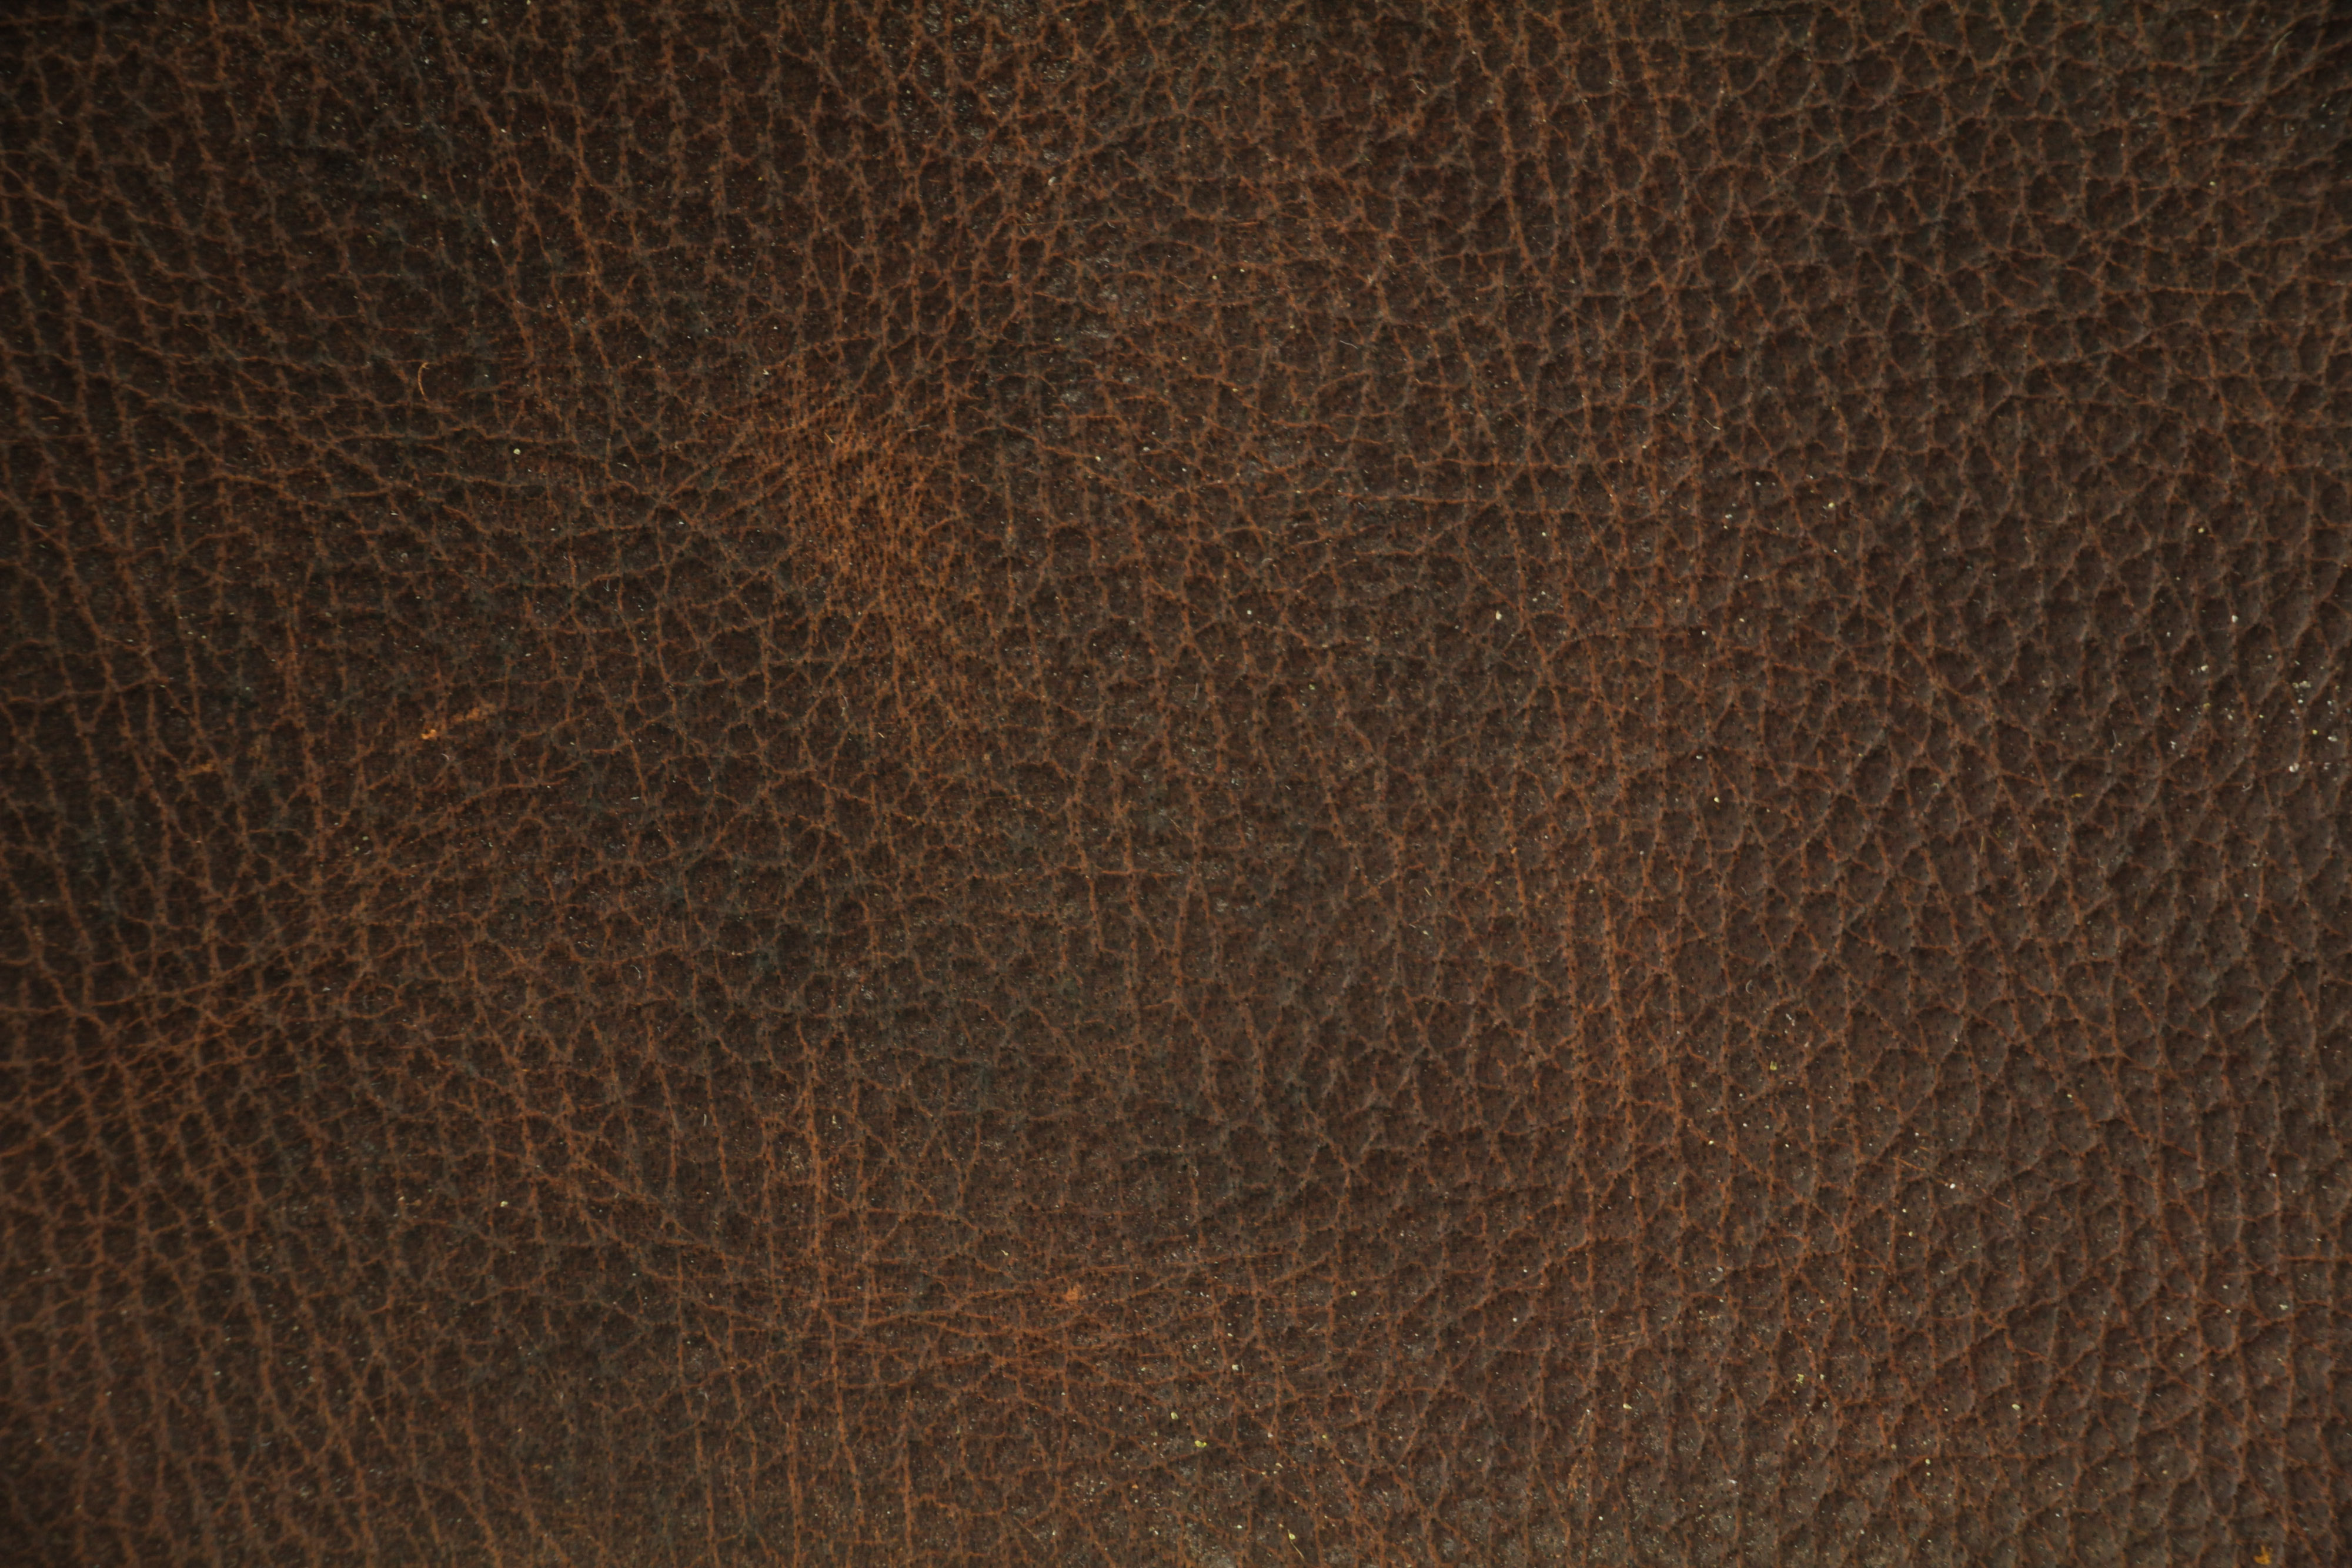 dark leather texture brown clouded hand made genuine stock photo ... for Brown Leather Texture Hd  117dqh